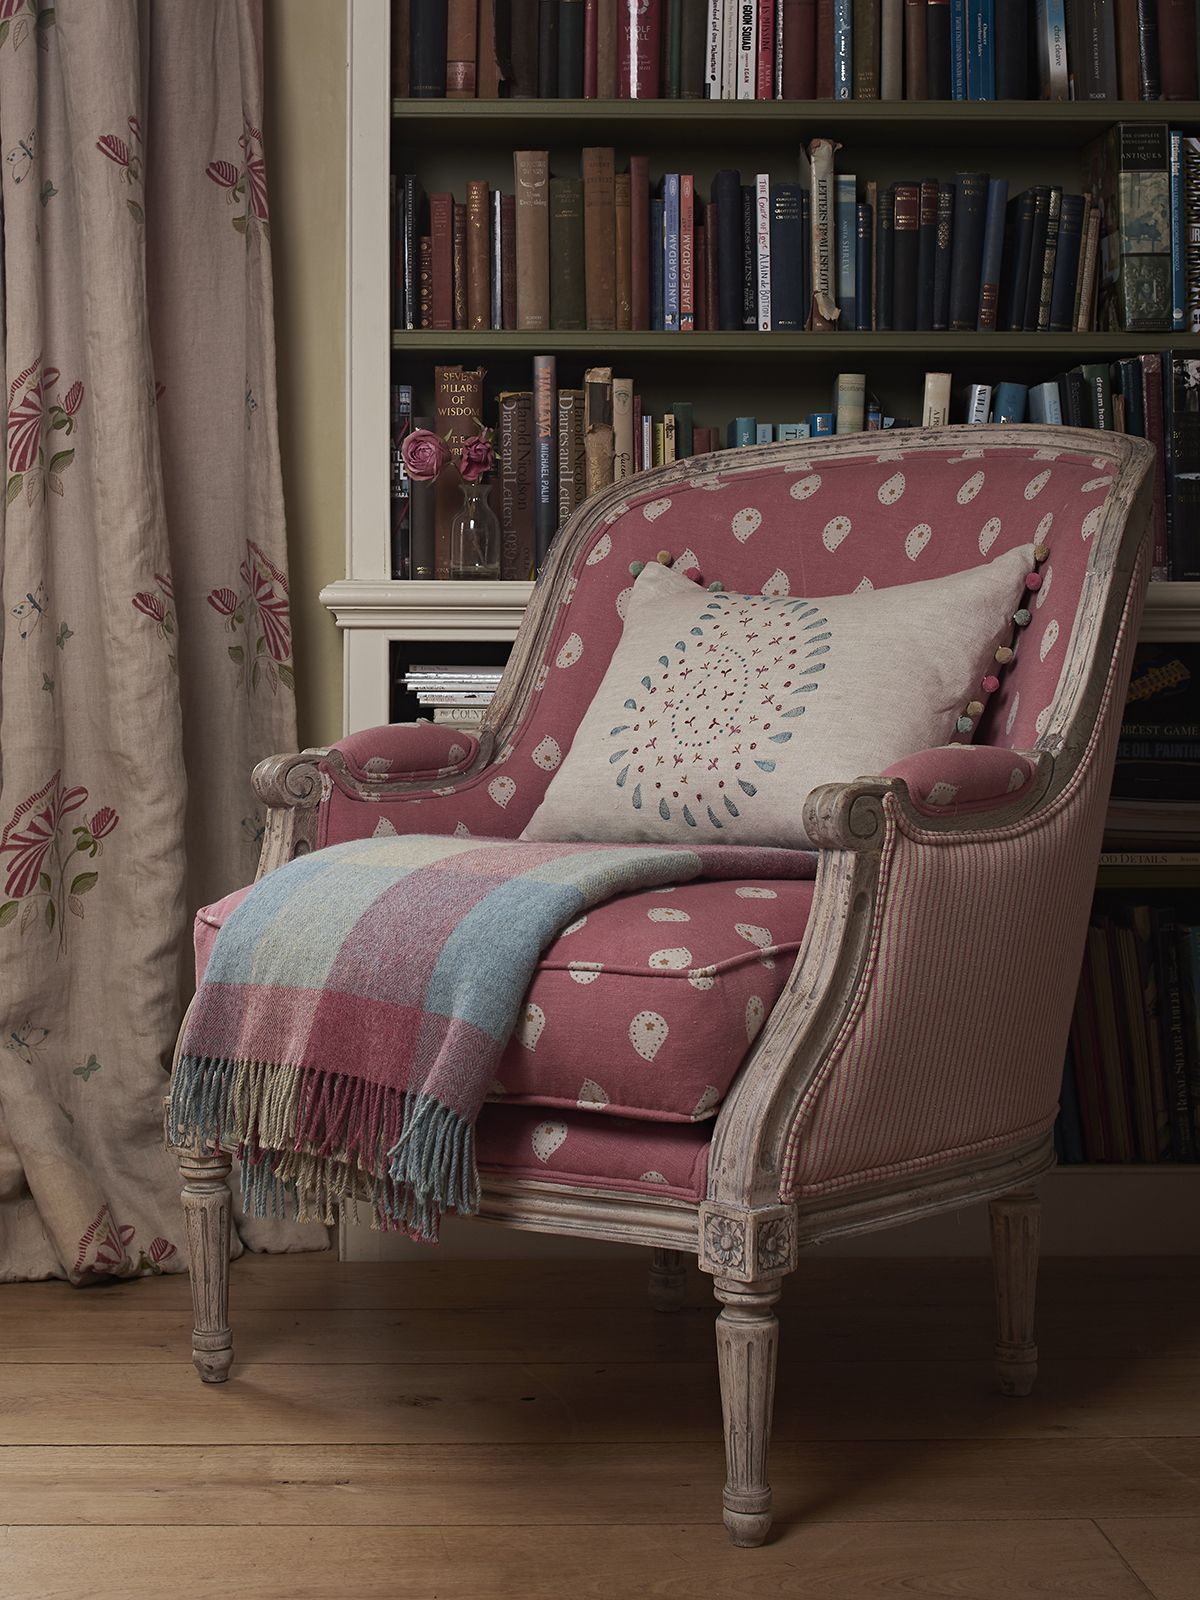 Use Pink and Blue together to brighten up a room | Sedie e ...